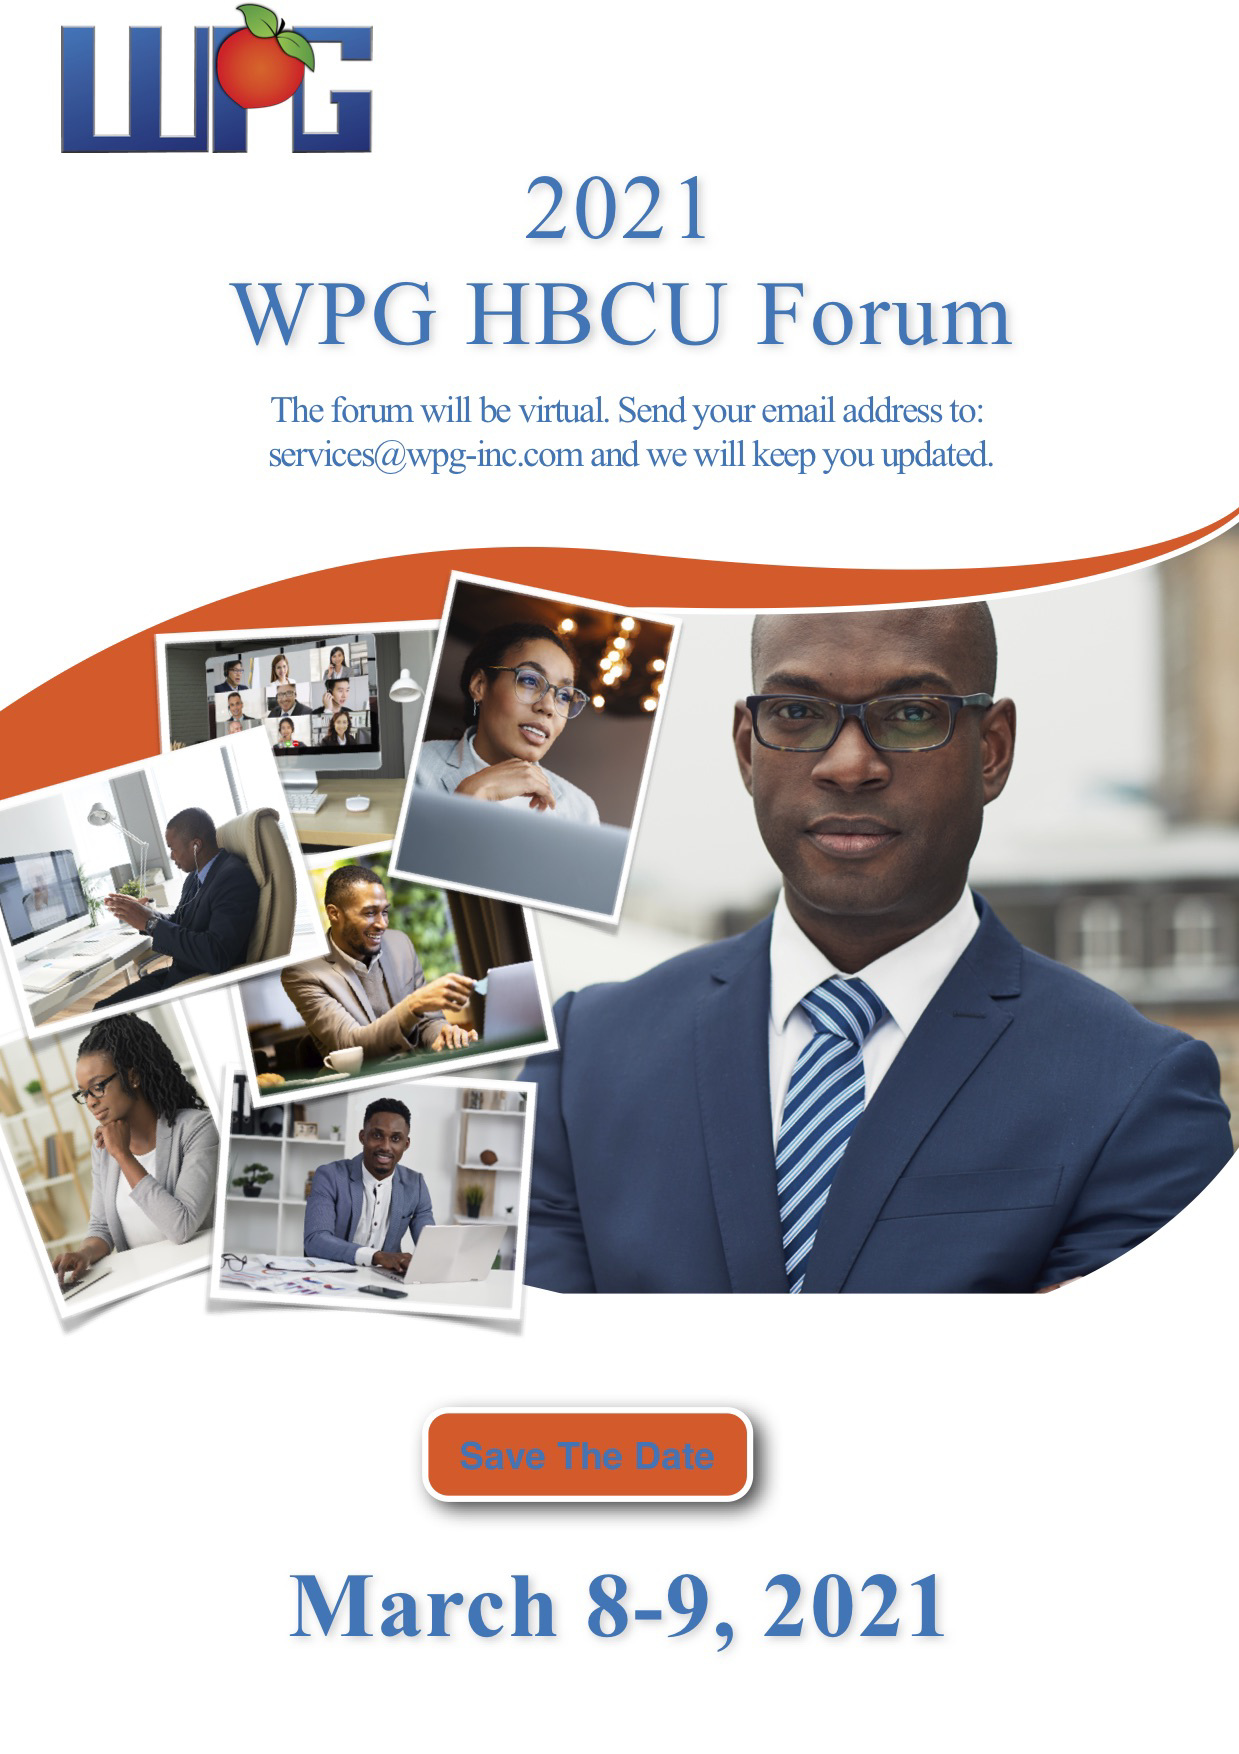 Save the Date: 2021 WPG HBCU Forum will be held March 8-9, 2021